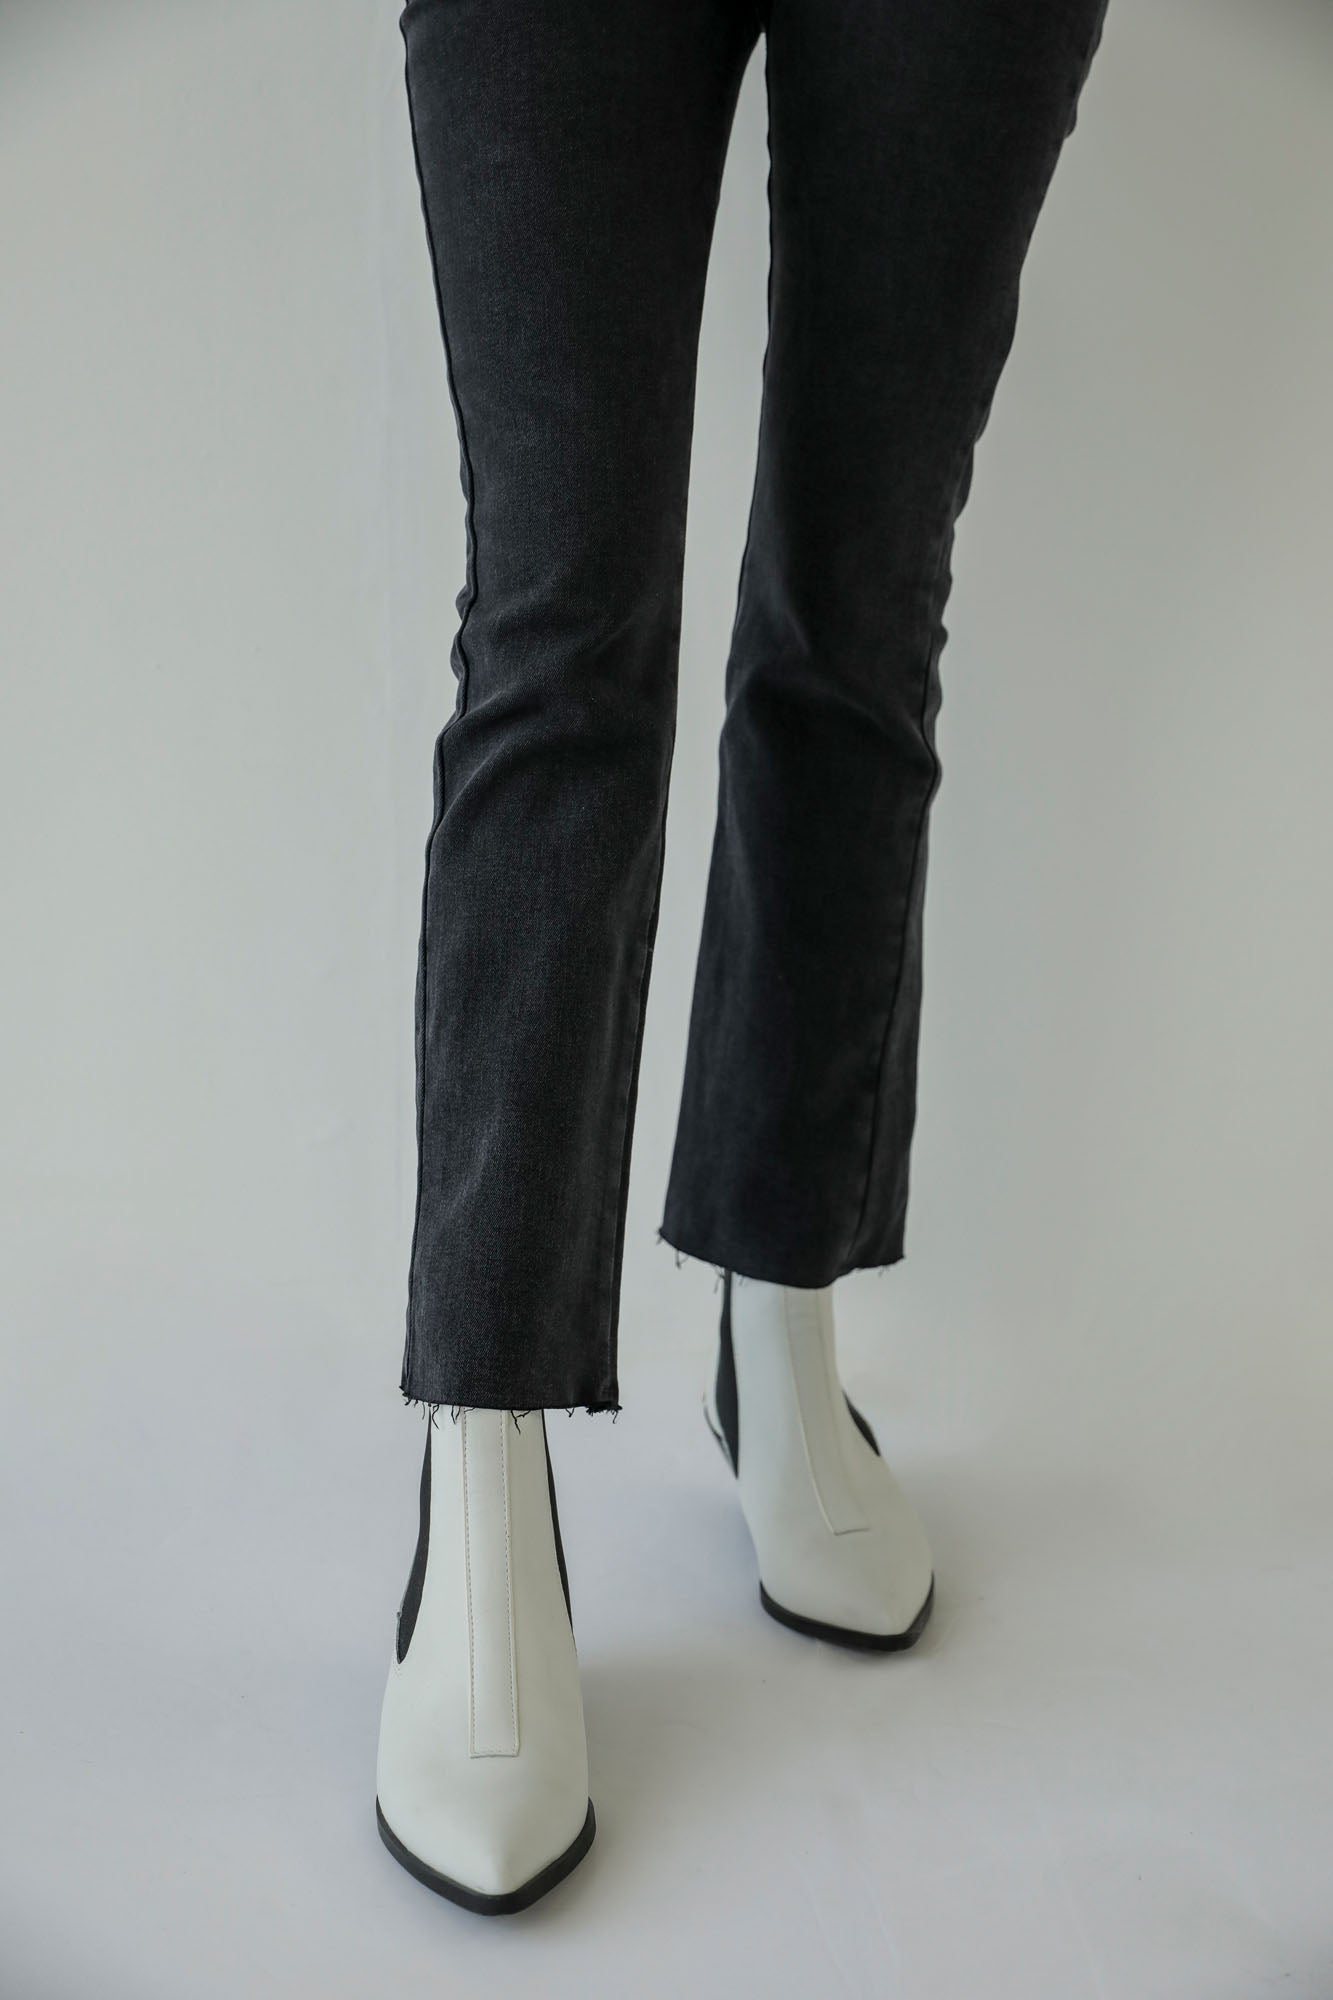 SLIM FIT JEANS (WBW401791)